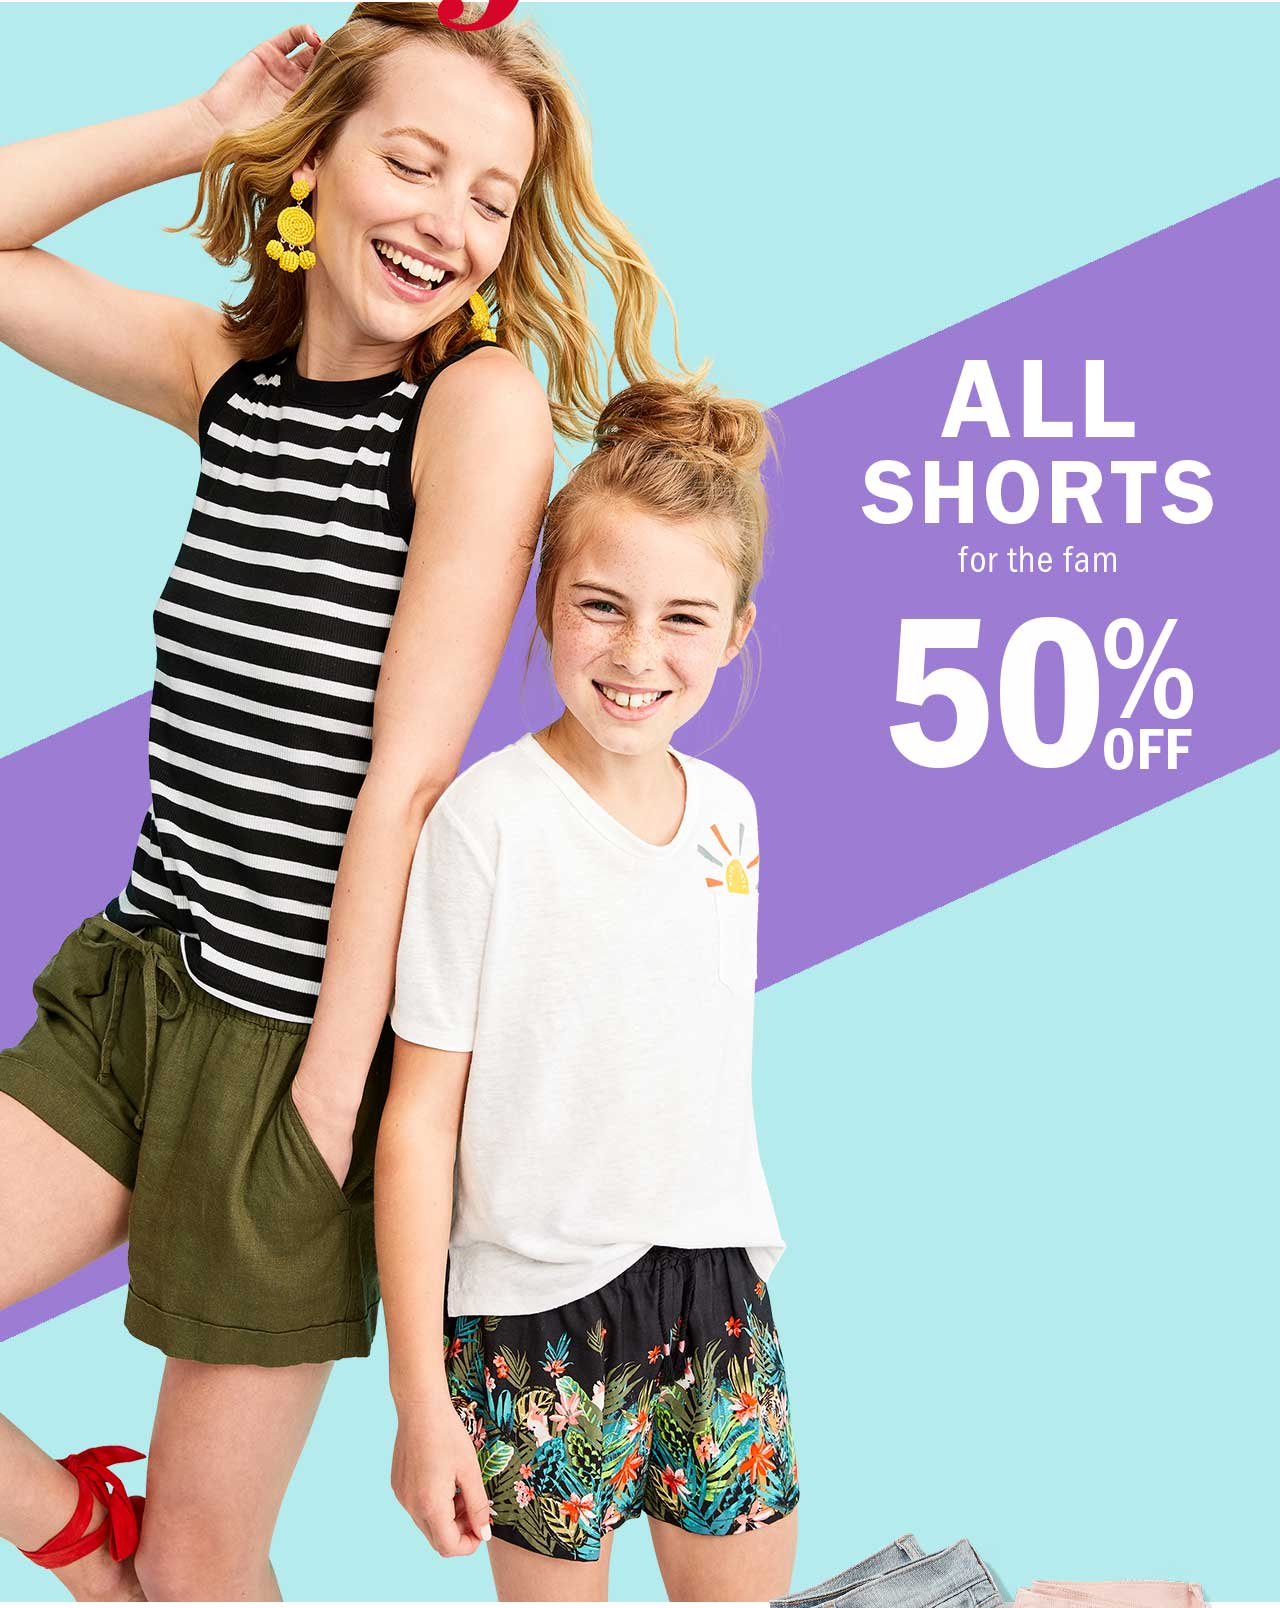 ALL SHORTS for the fam 50% OFF